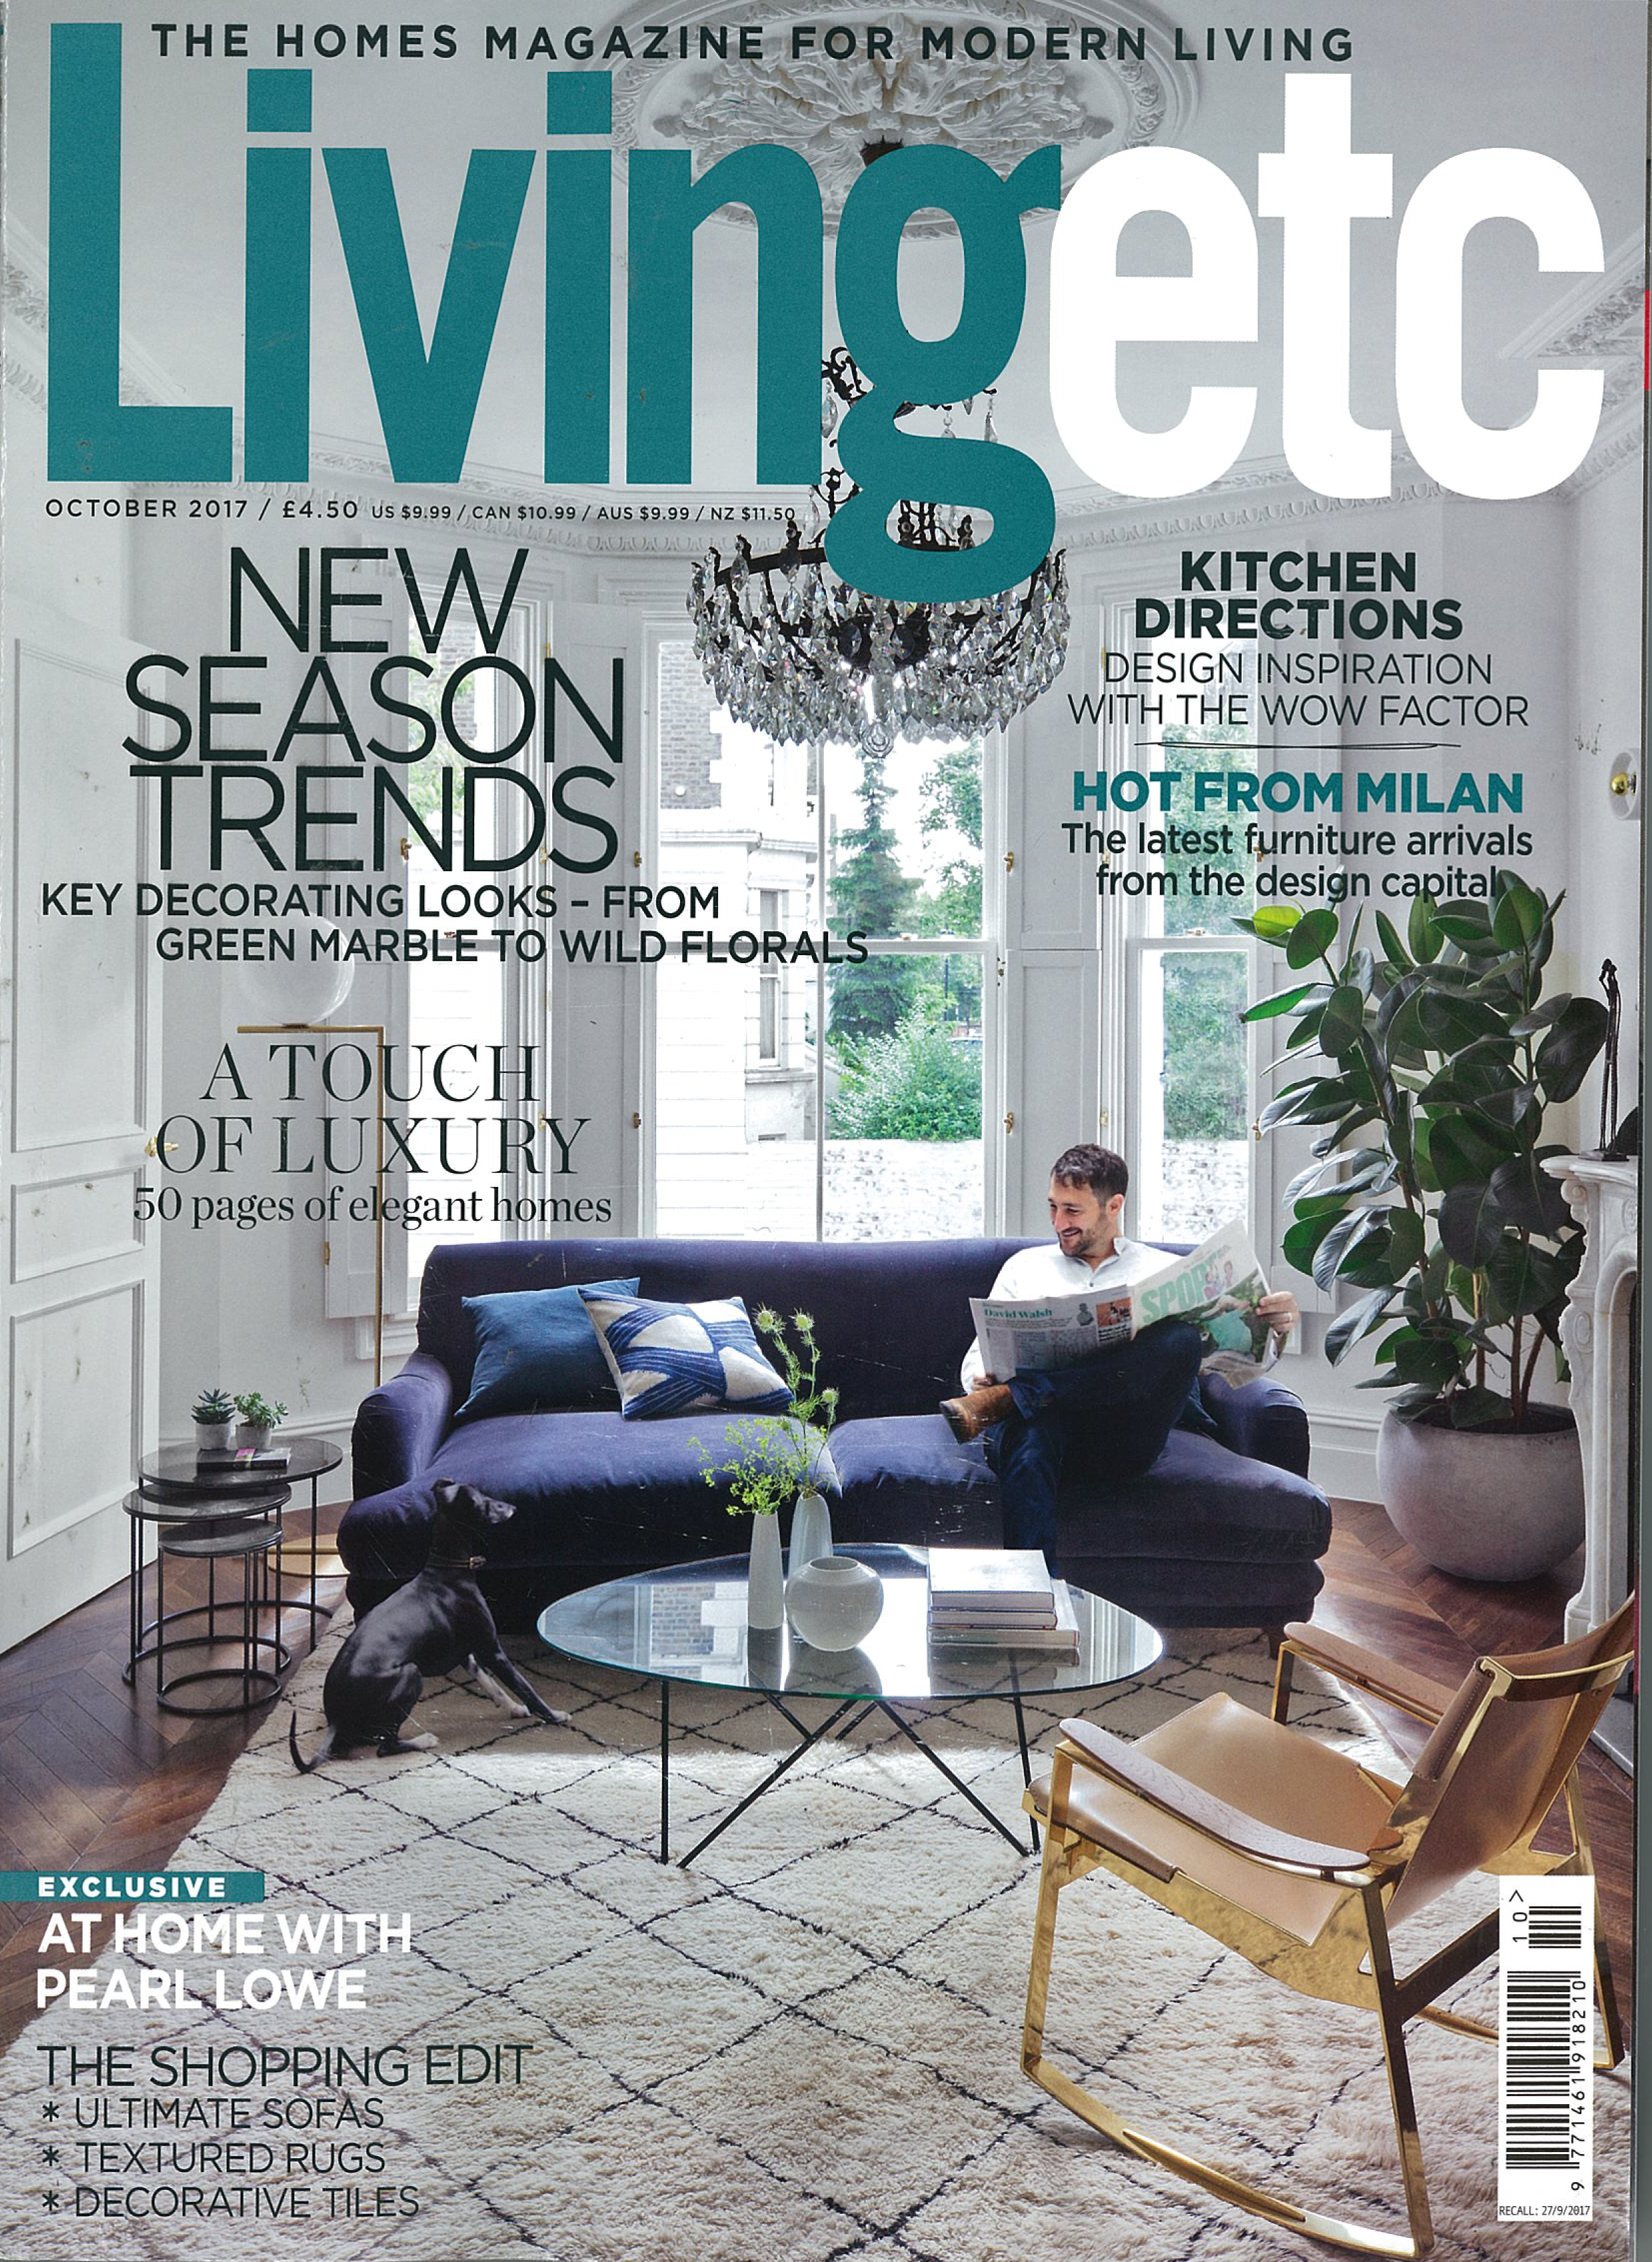 IN THE PRESS - LIVING ETC OCTOBER 2017